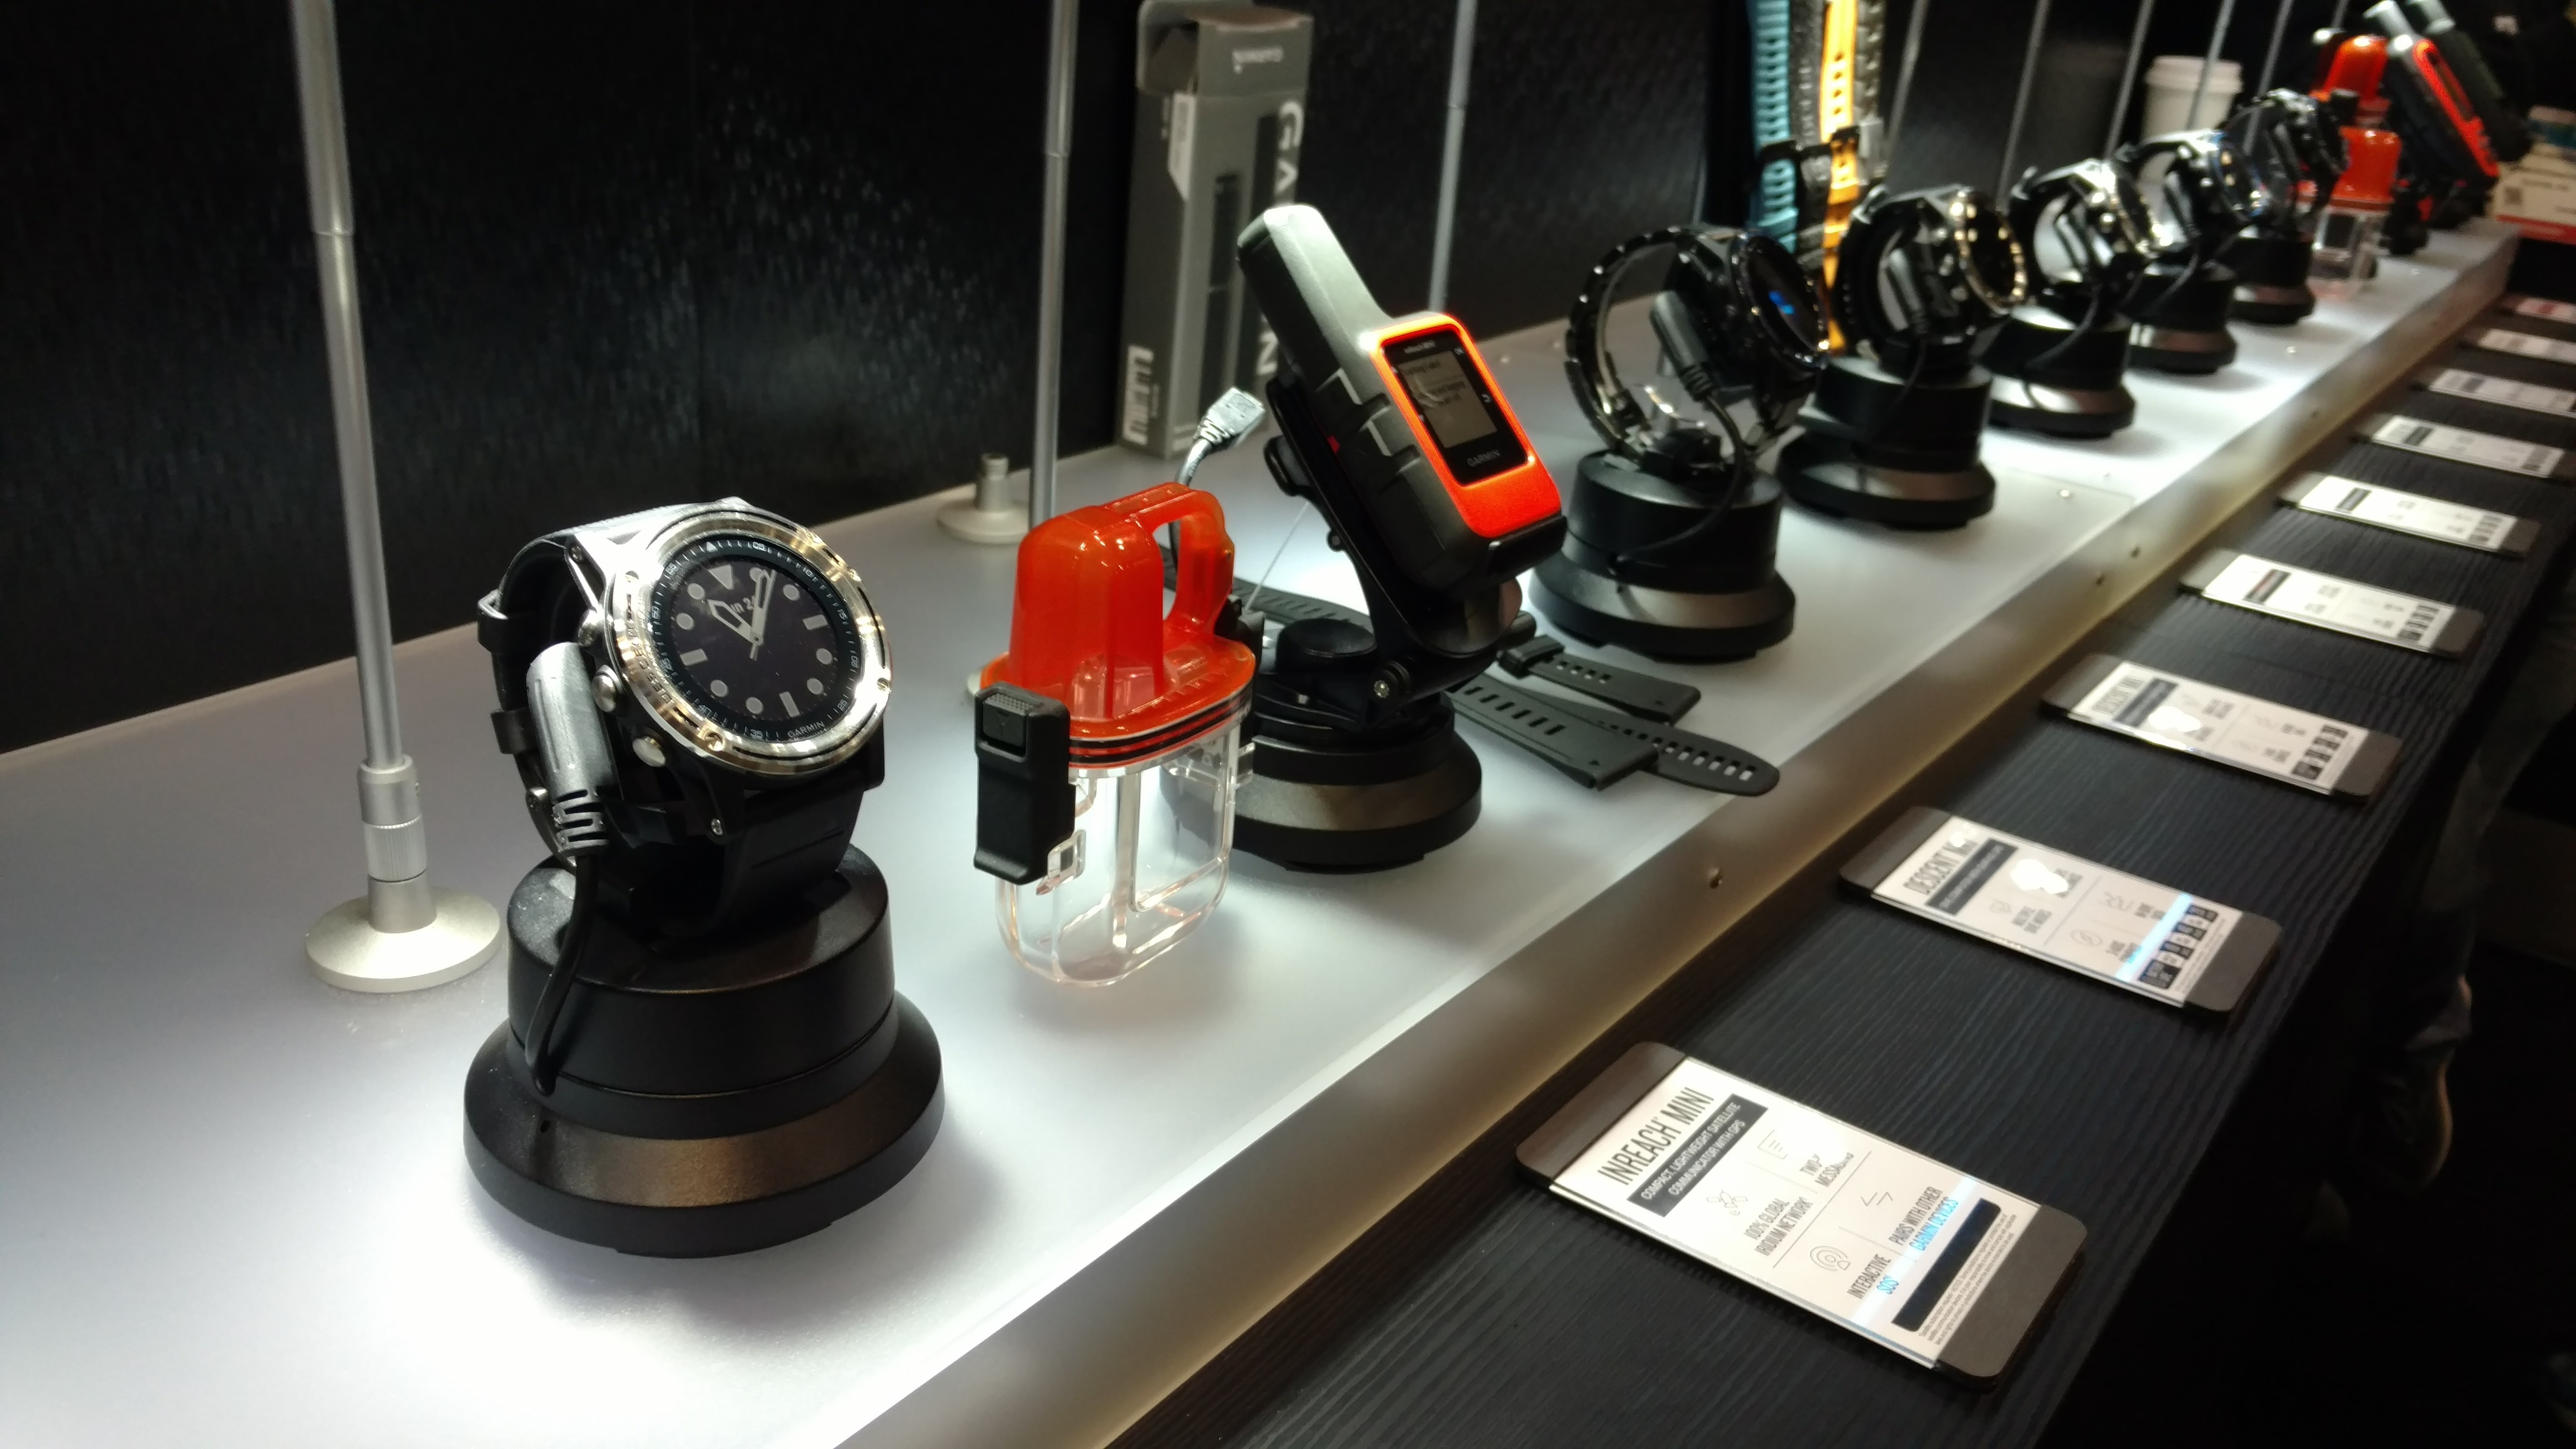 Garmin Descent Mk1 & inReach Mini at DEMA Show 2019